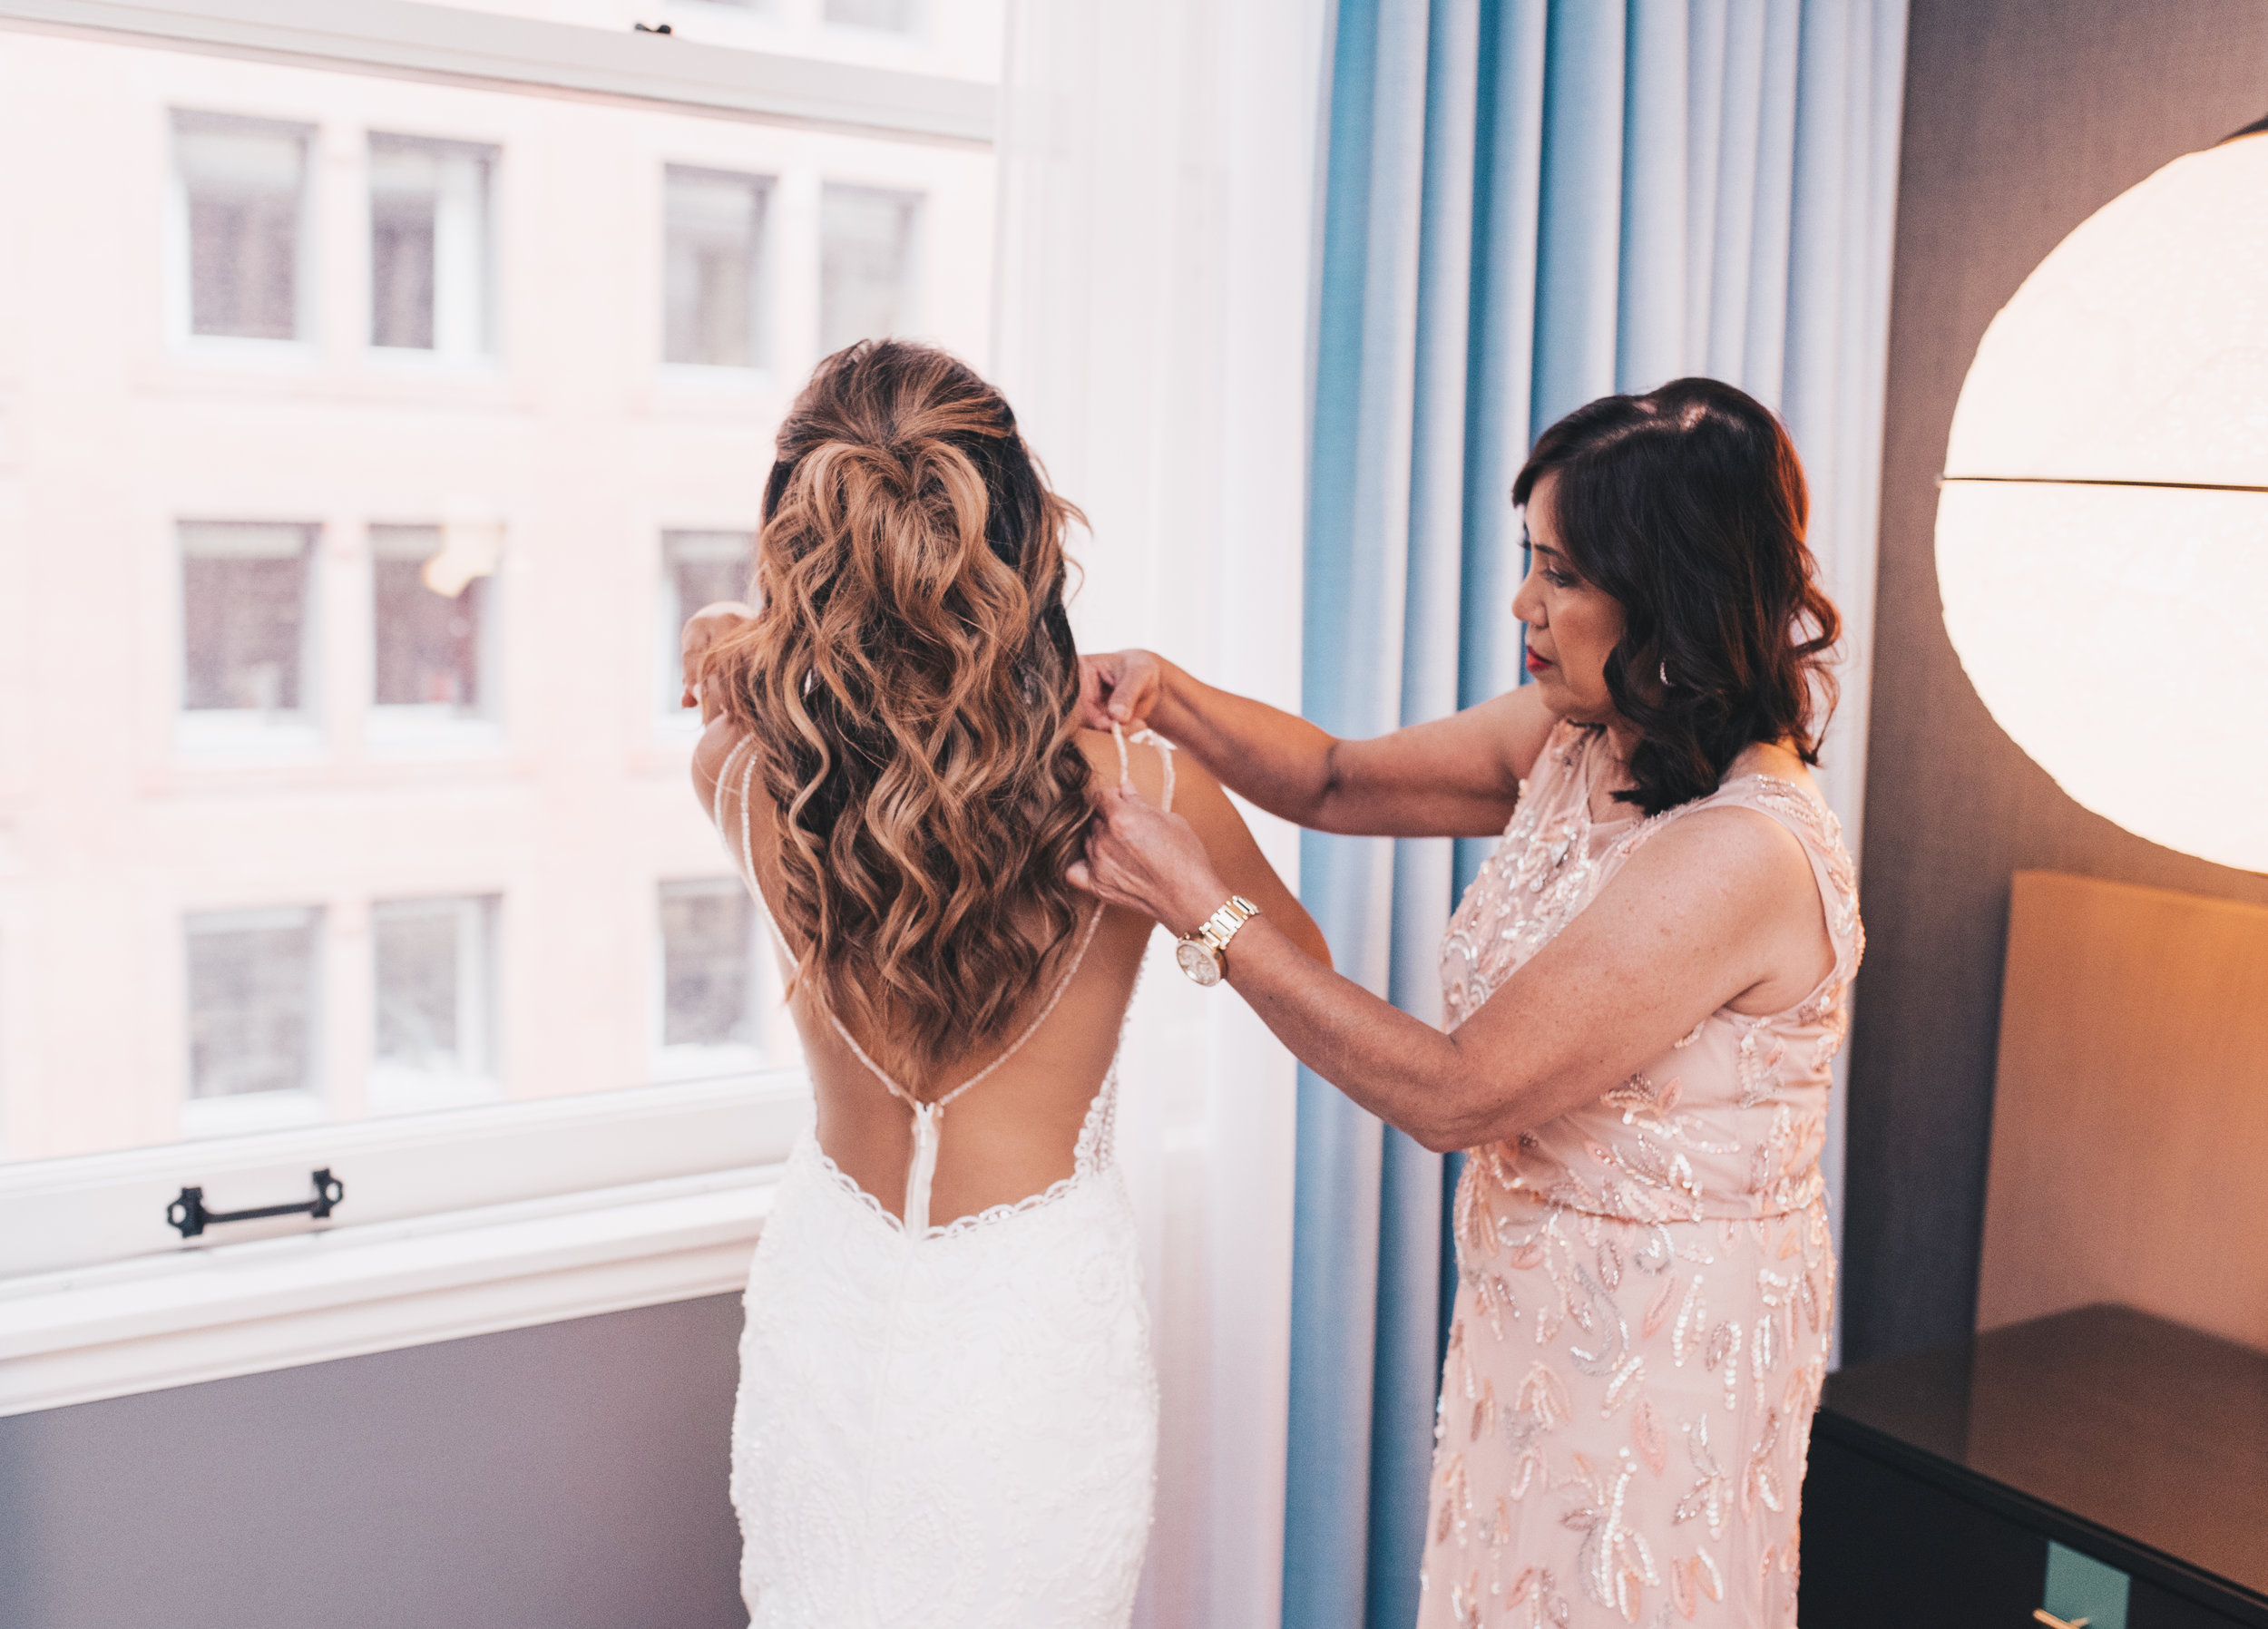 Bride Getting Ready Photos, Wedding Detail Photos, Kimpton Gray Hotel Wedding, Chicago Wedding